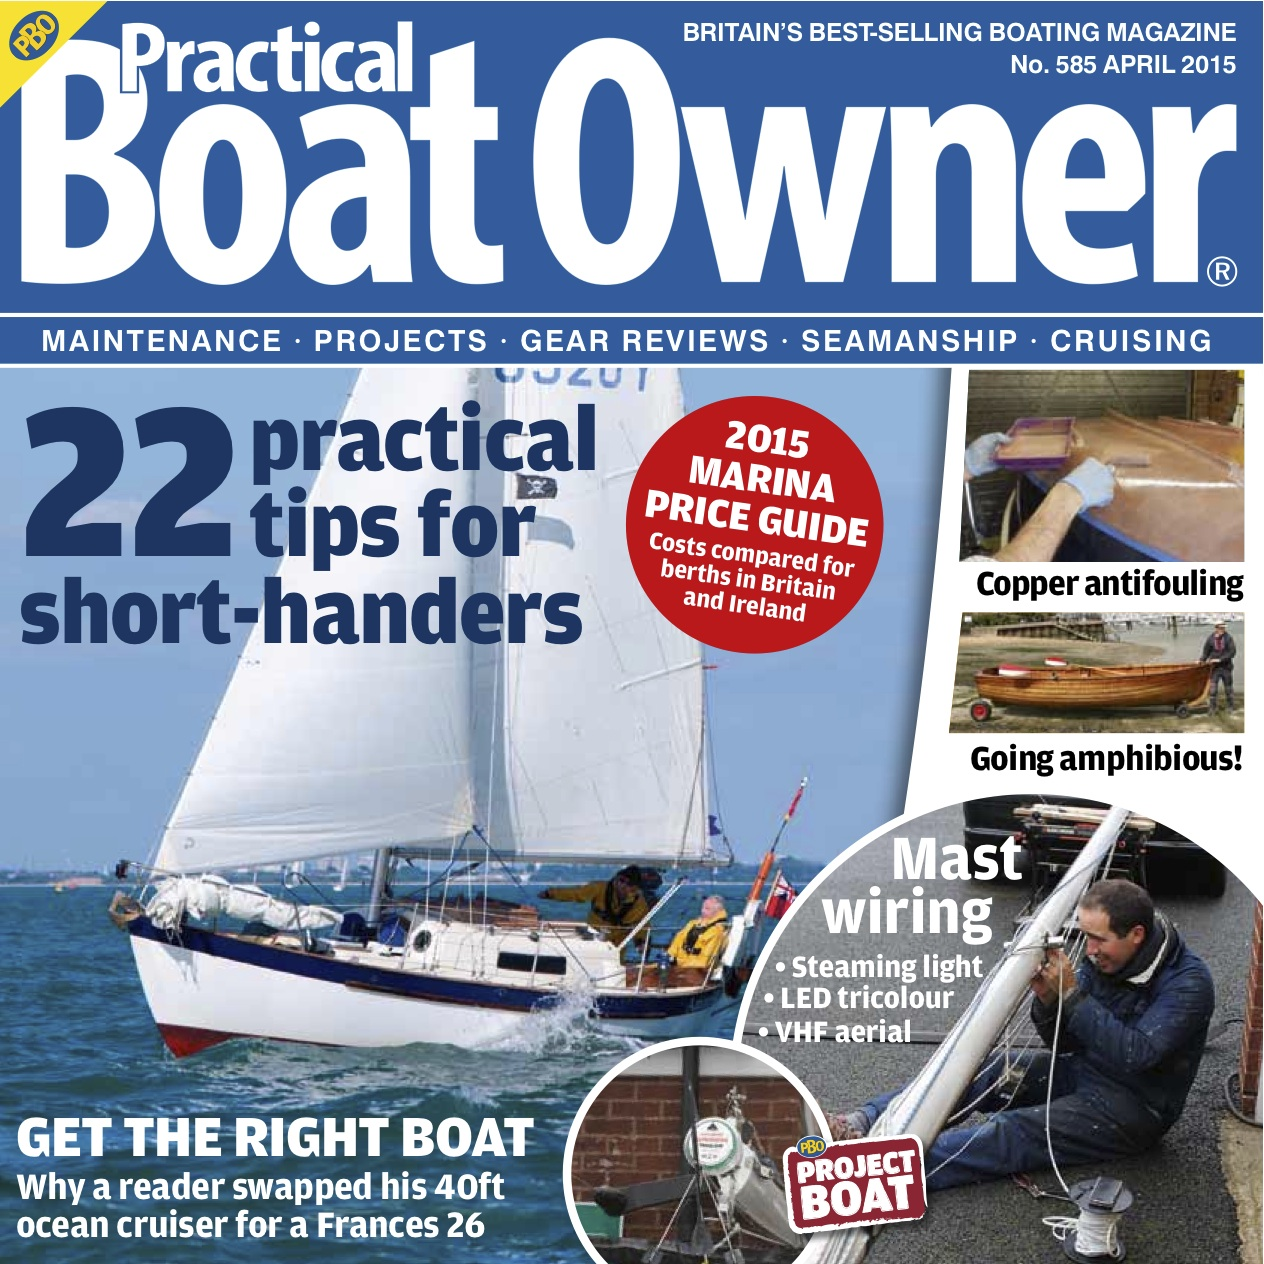 April issue on sale today! - Practical Boat Owner